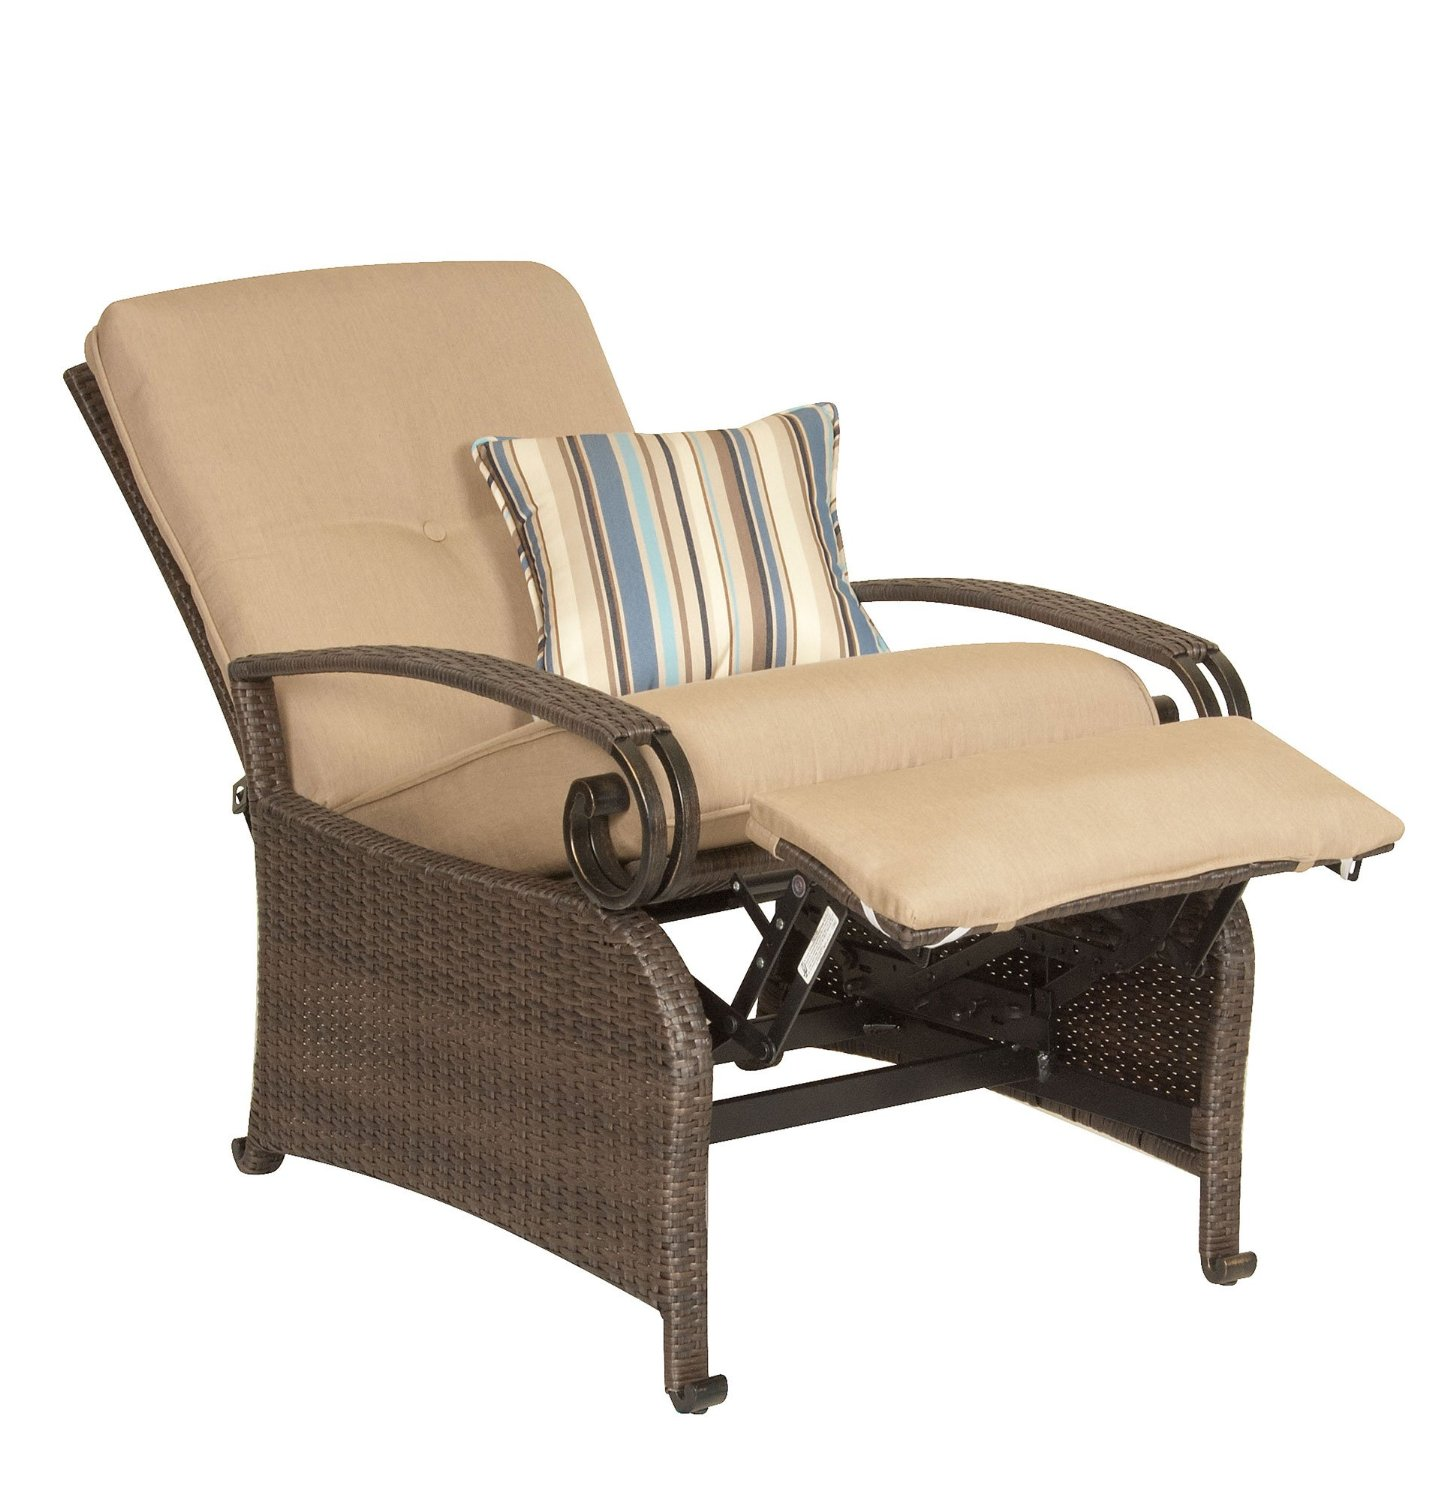 Comfortable reclining garden chairs top 3 outdoor for Reclining patio chair